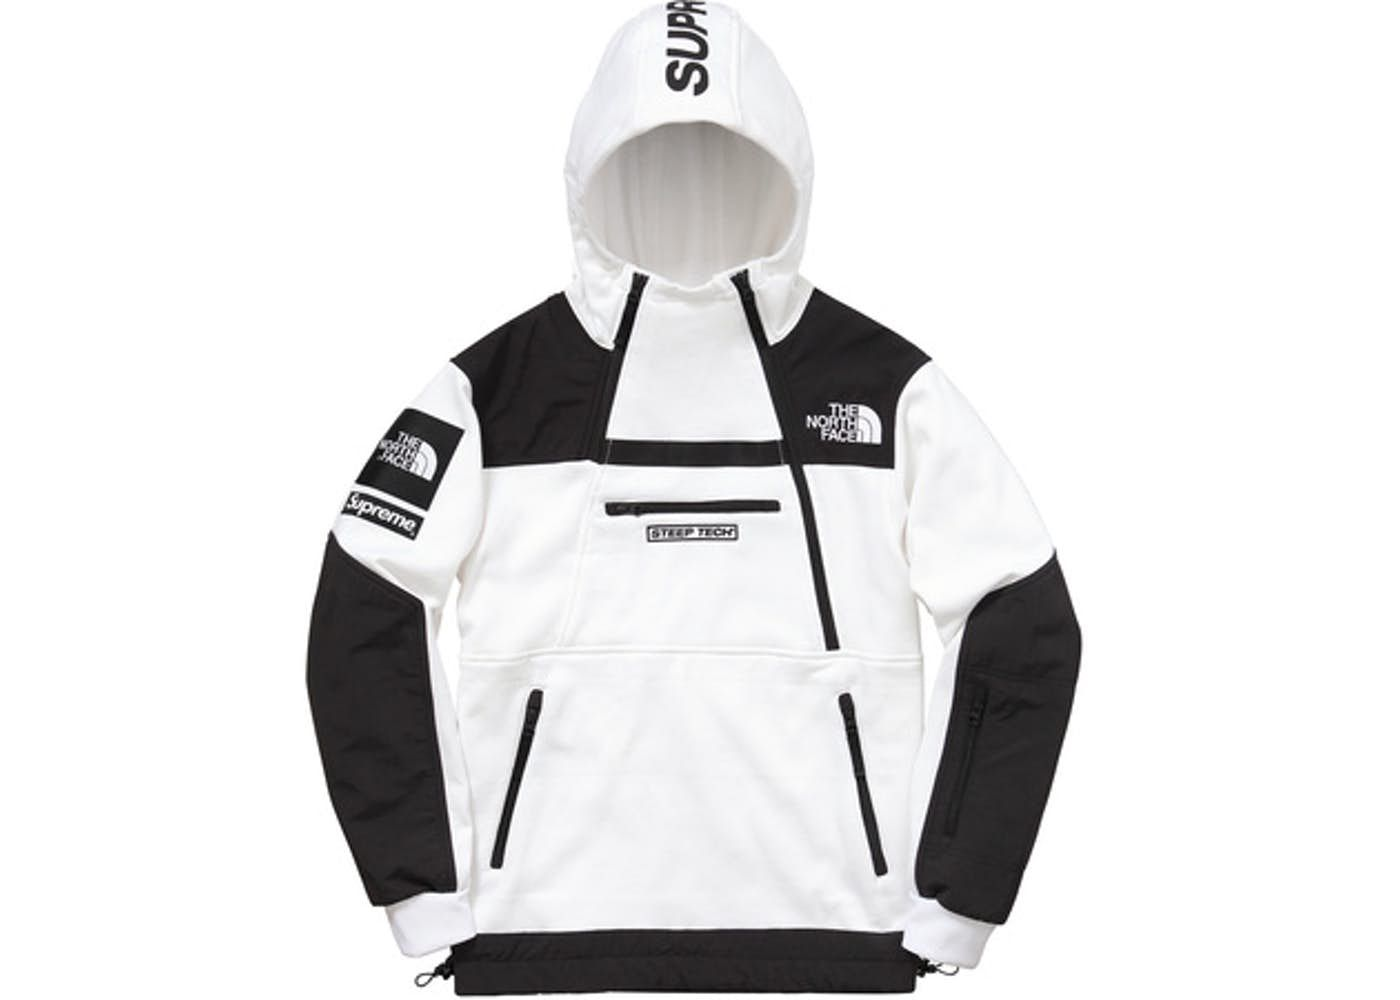 ee537c9d3b Check out the Supreme The North Face Steep Tech Hooded Sweatshirt White  available on StockX